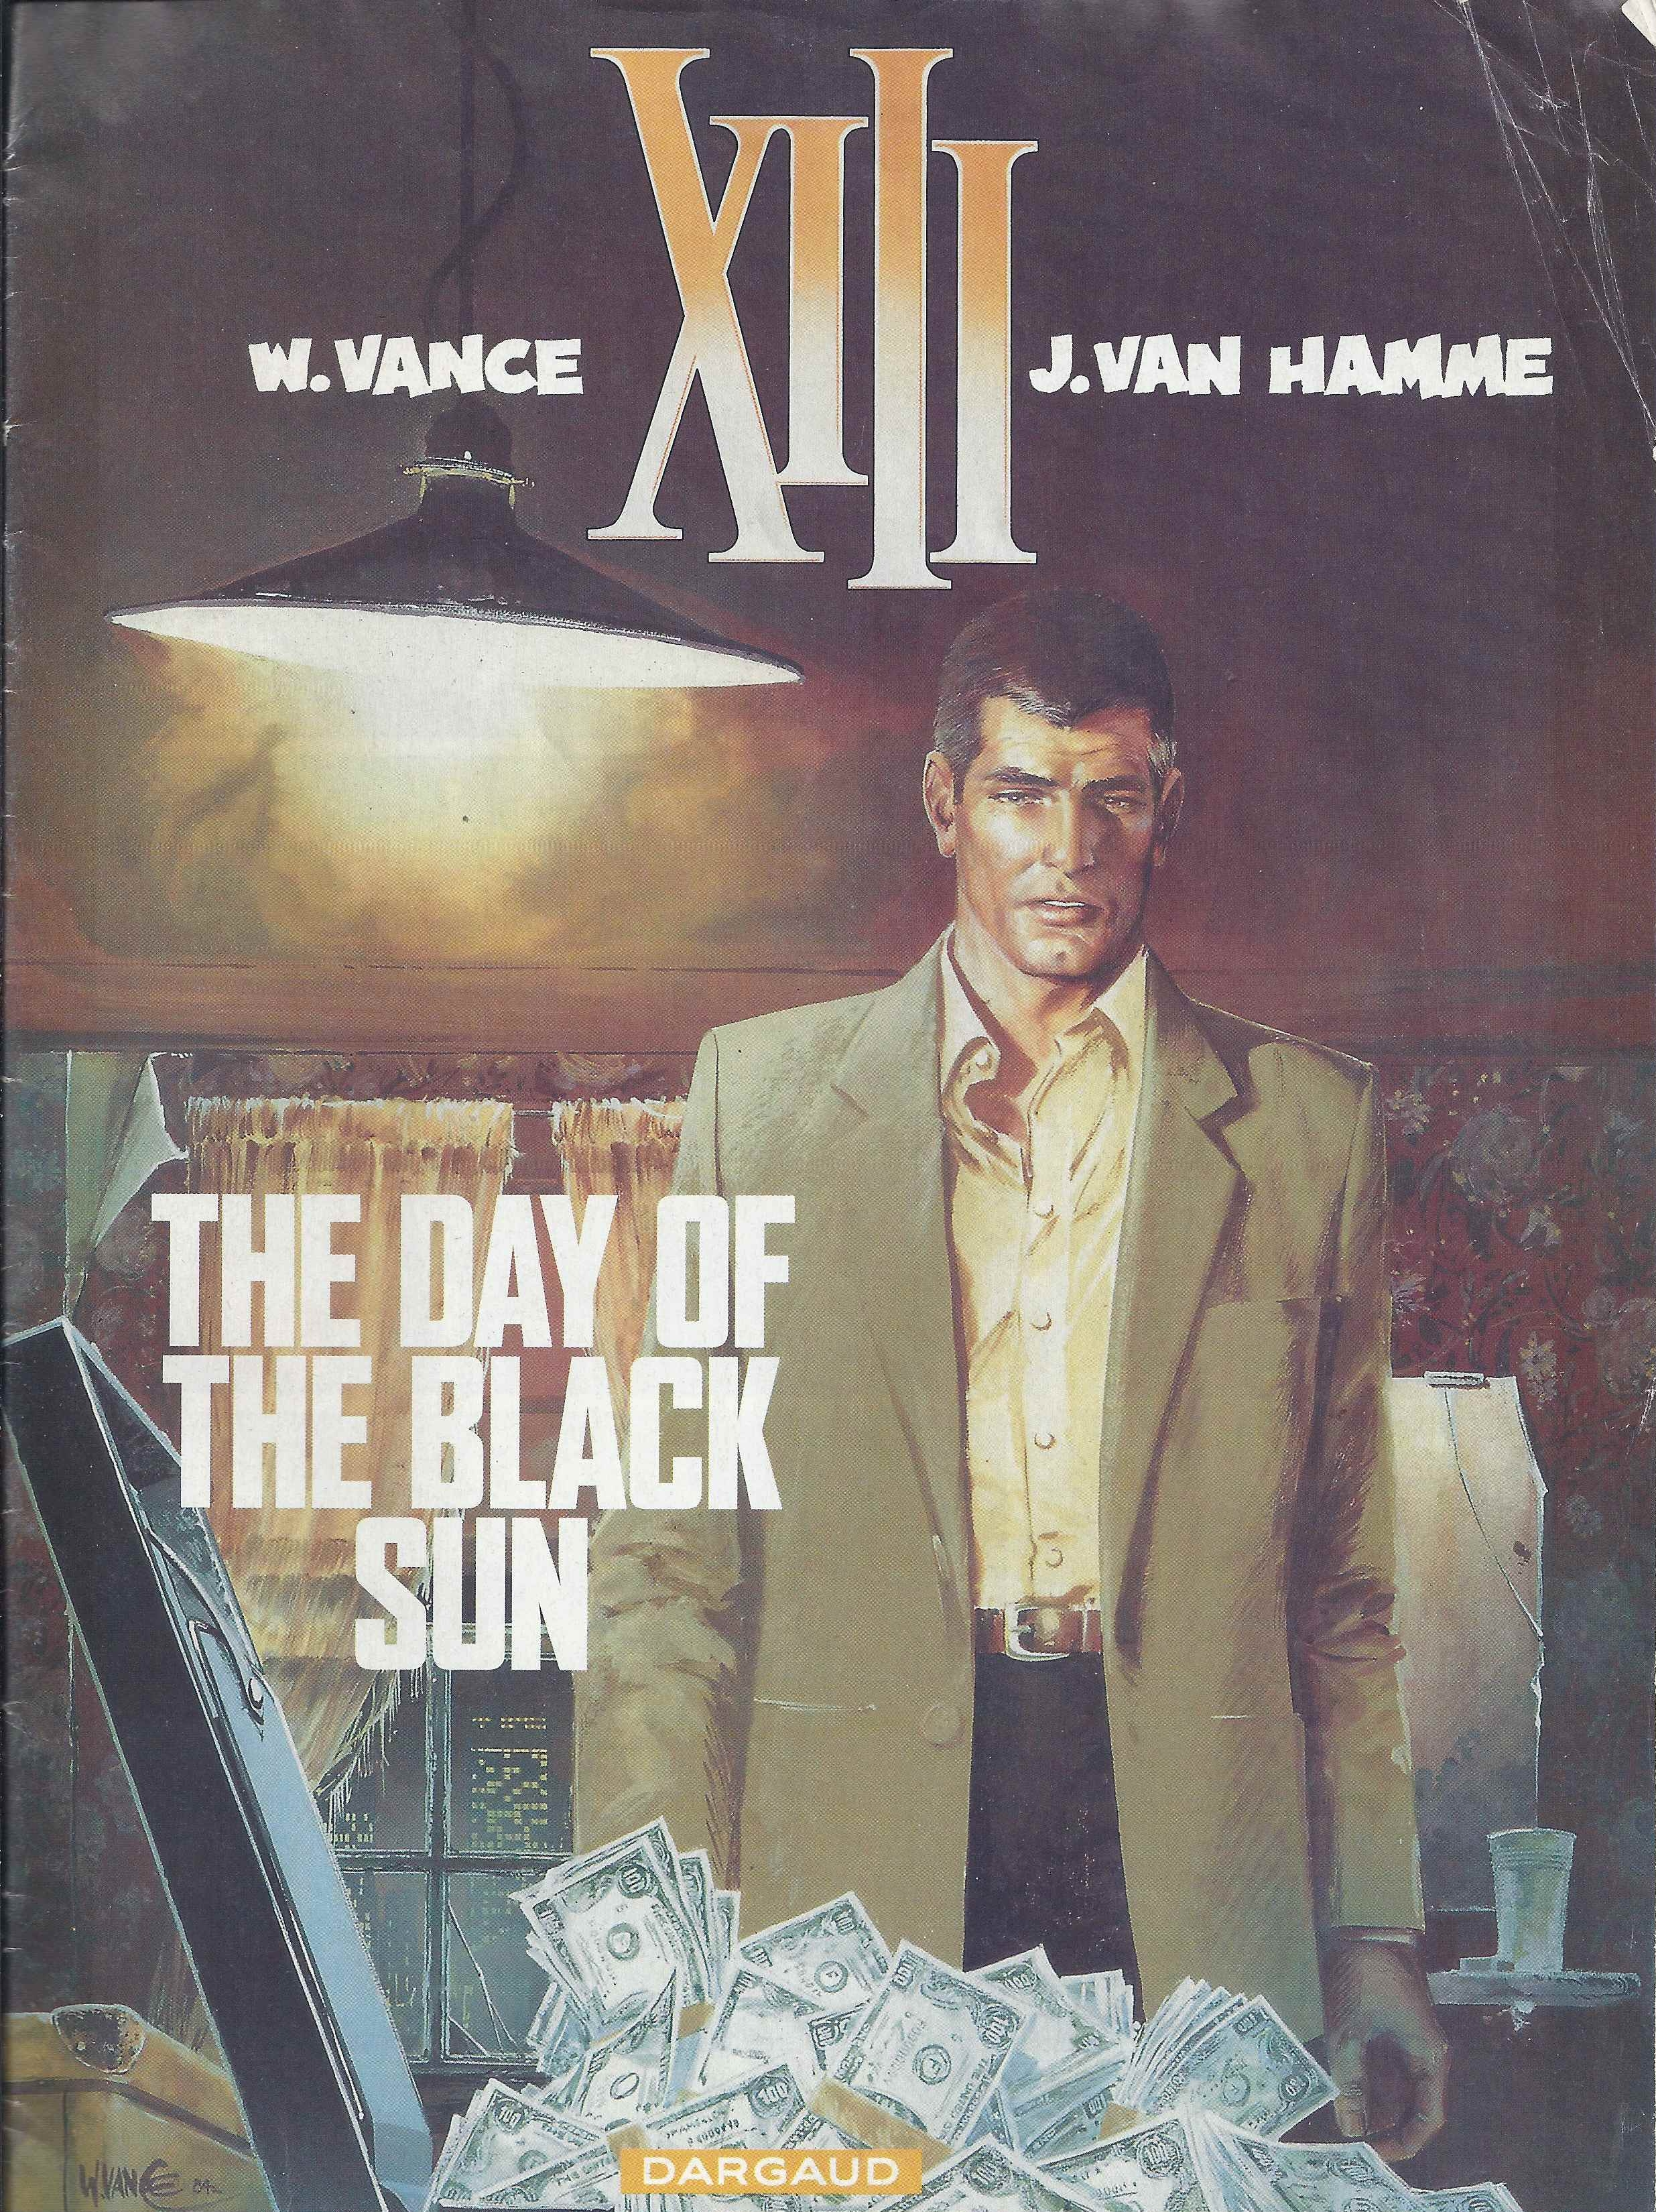 Xiii the day of the black sun w vance j van hamme 2003 dargaud 1 00 xiii xiii1984c